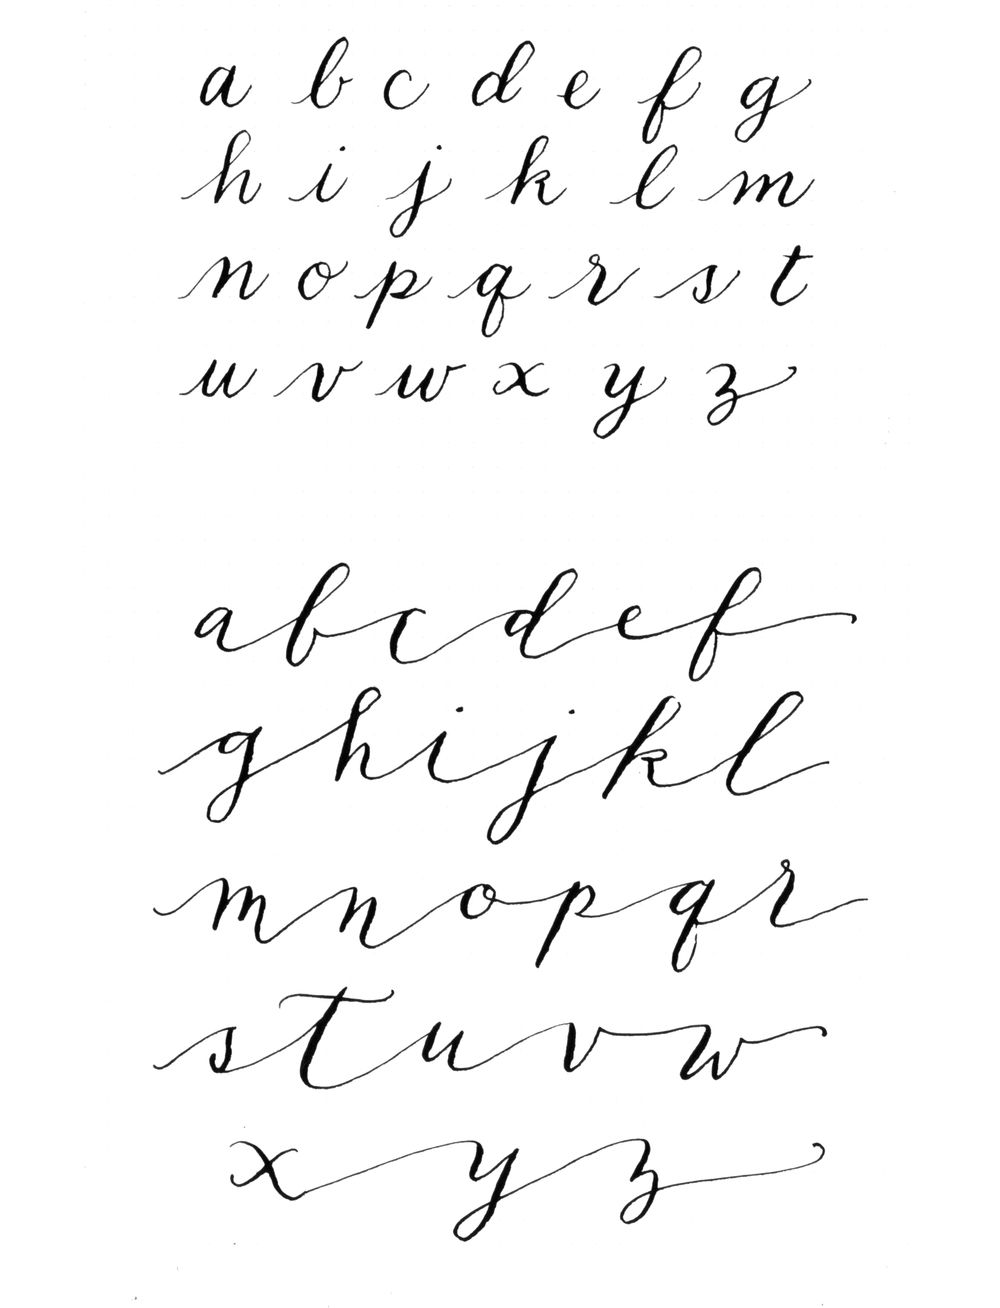 Worksheet The Alphabet Cursive i cant remember the last time sat down and just wrote out modern calligraphy alphabetcursive